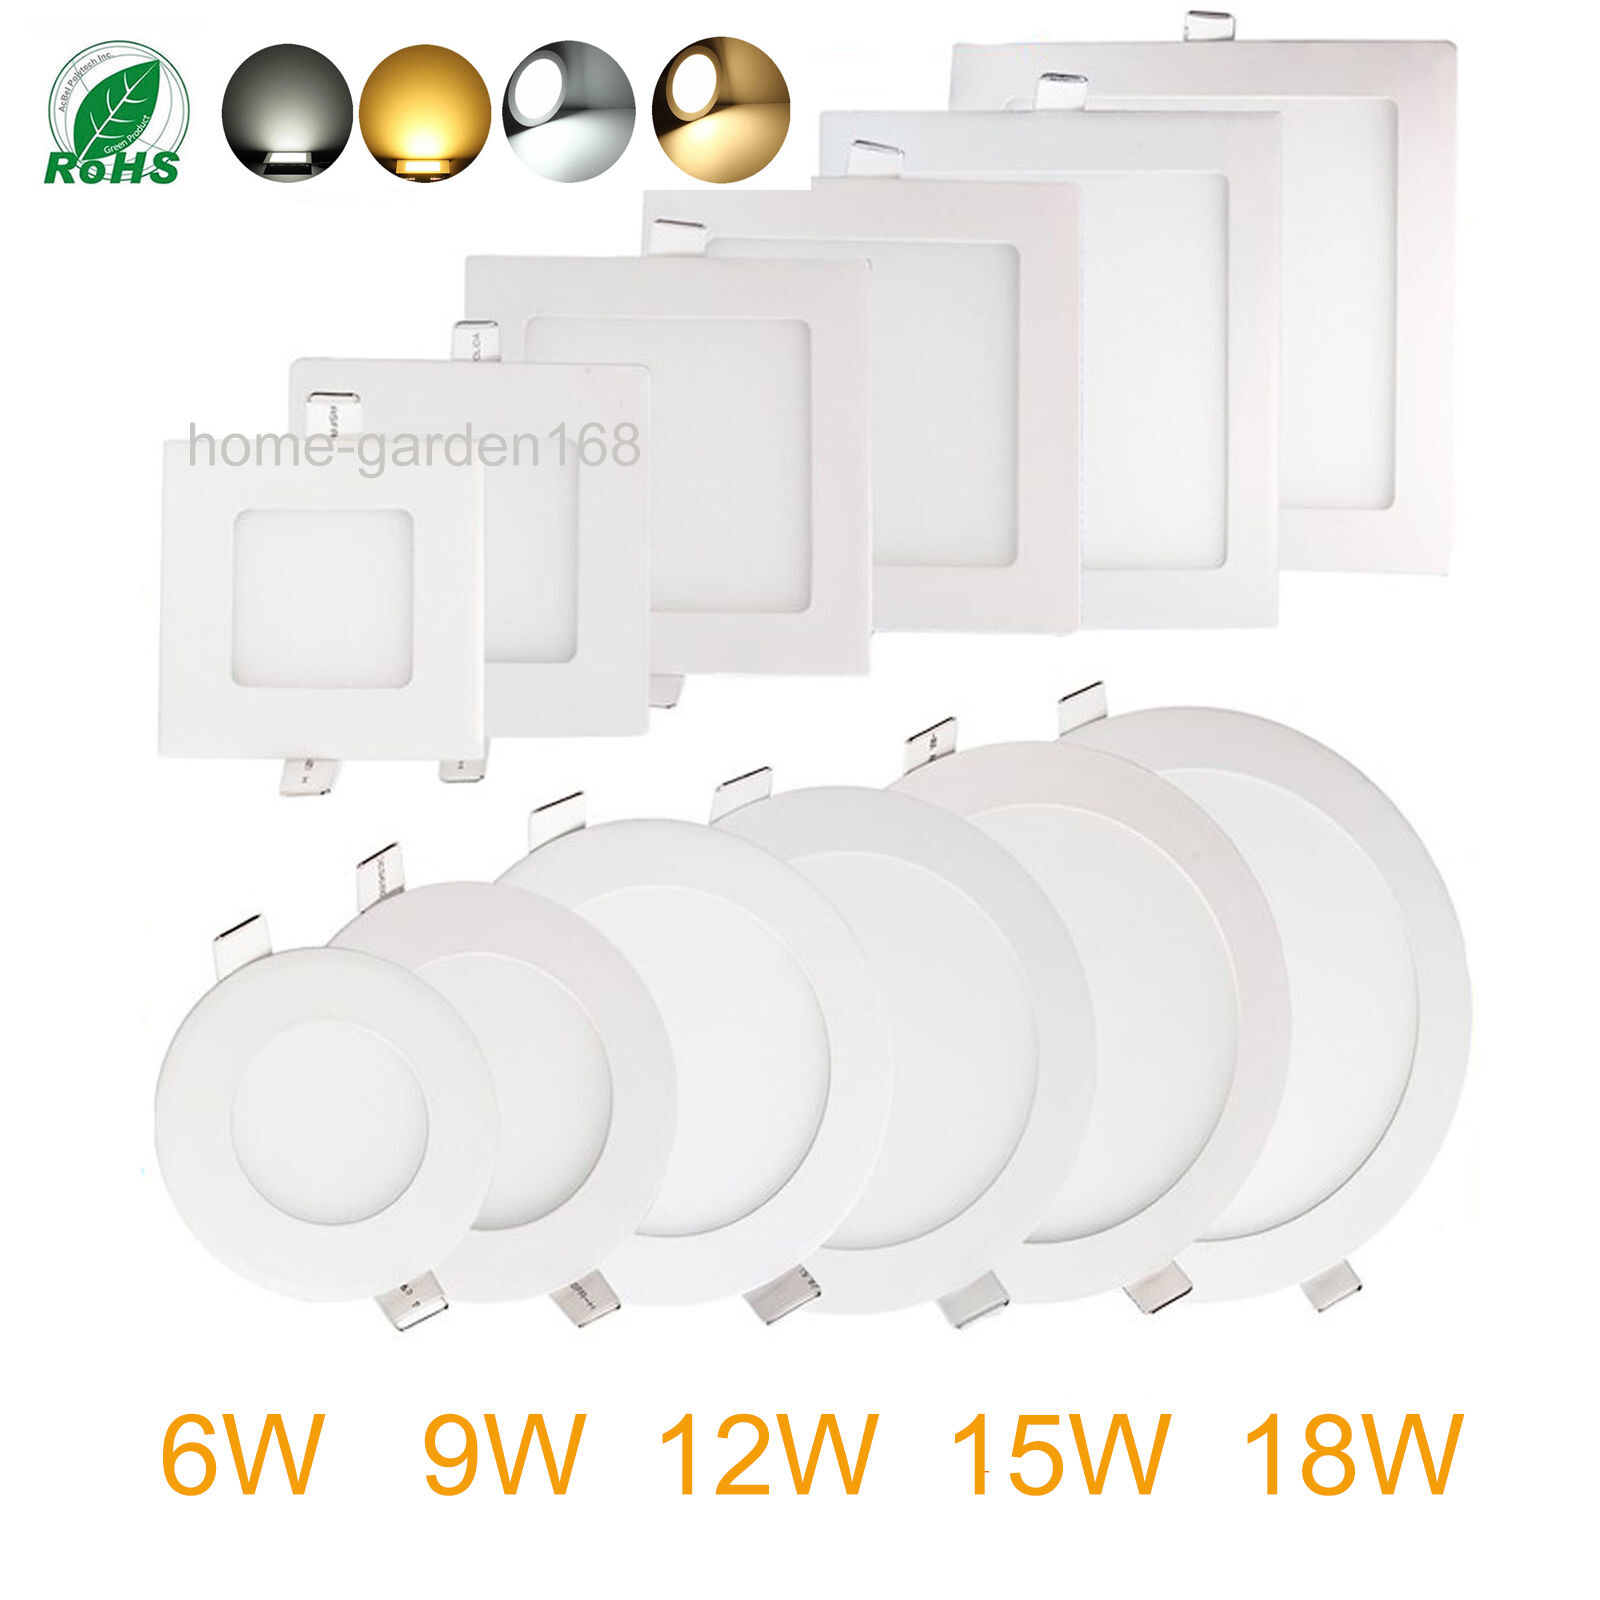 Regulador 6W 9W 12W 15W 18W Led Luz Empotrada de Techo Downlight Panel cree